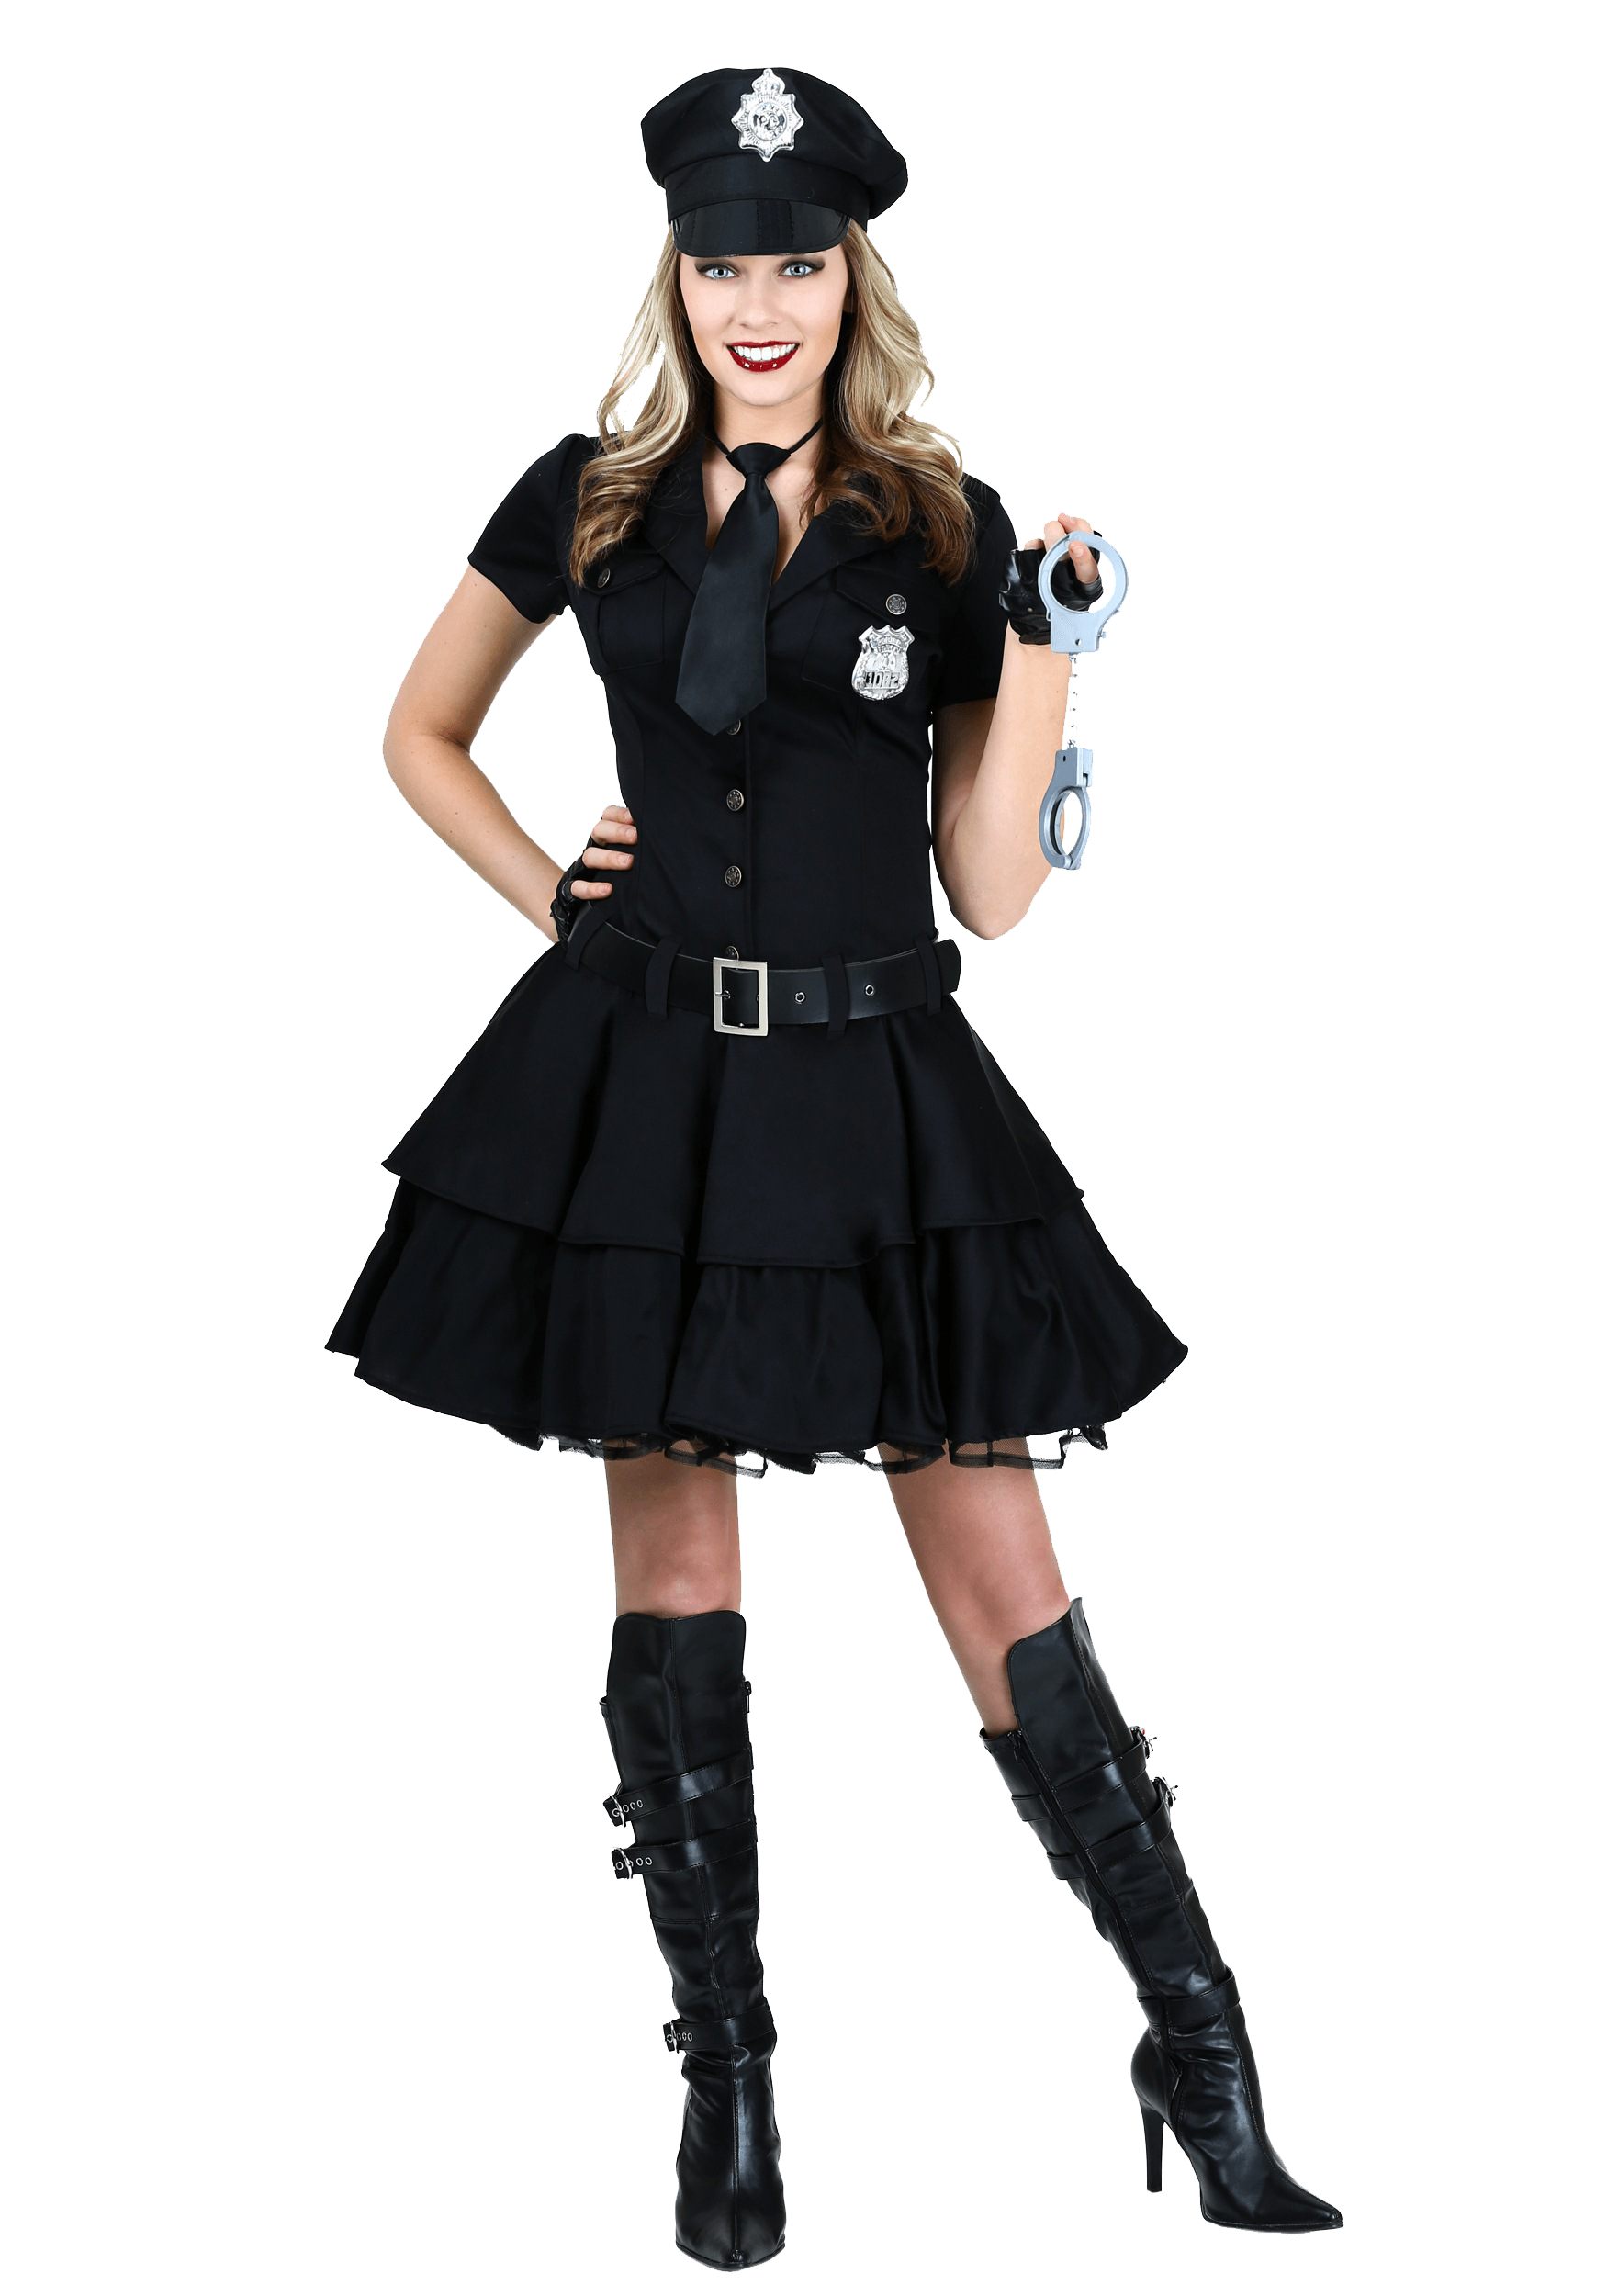 Halloween Costume PNG Transparent Images.